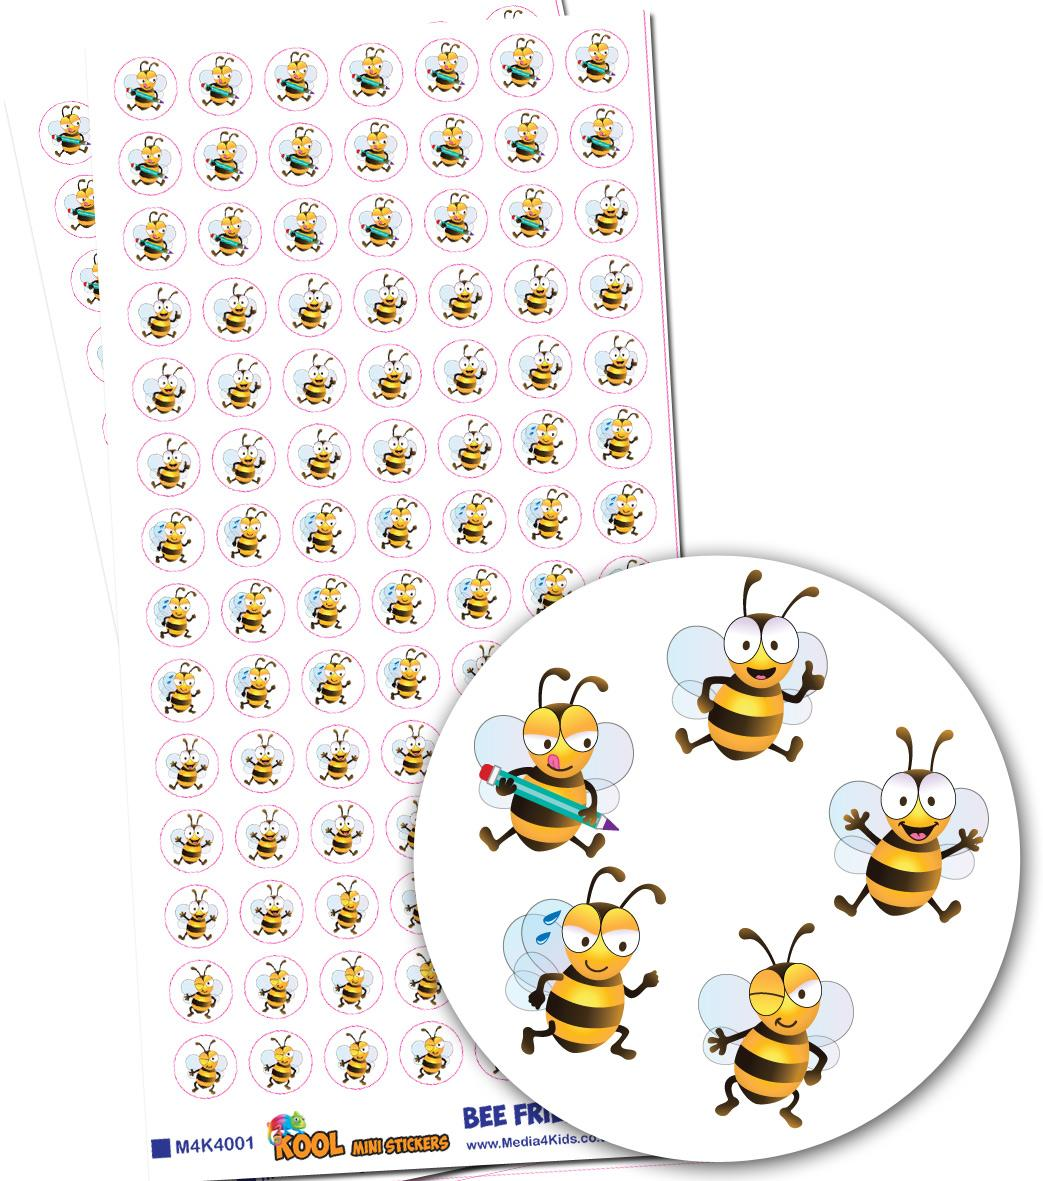 Stickers Petits | Amis Abeilles (Bee Friends) Autocollants Mini